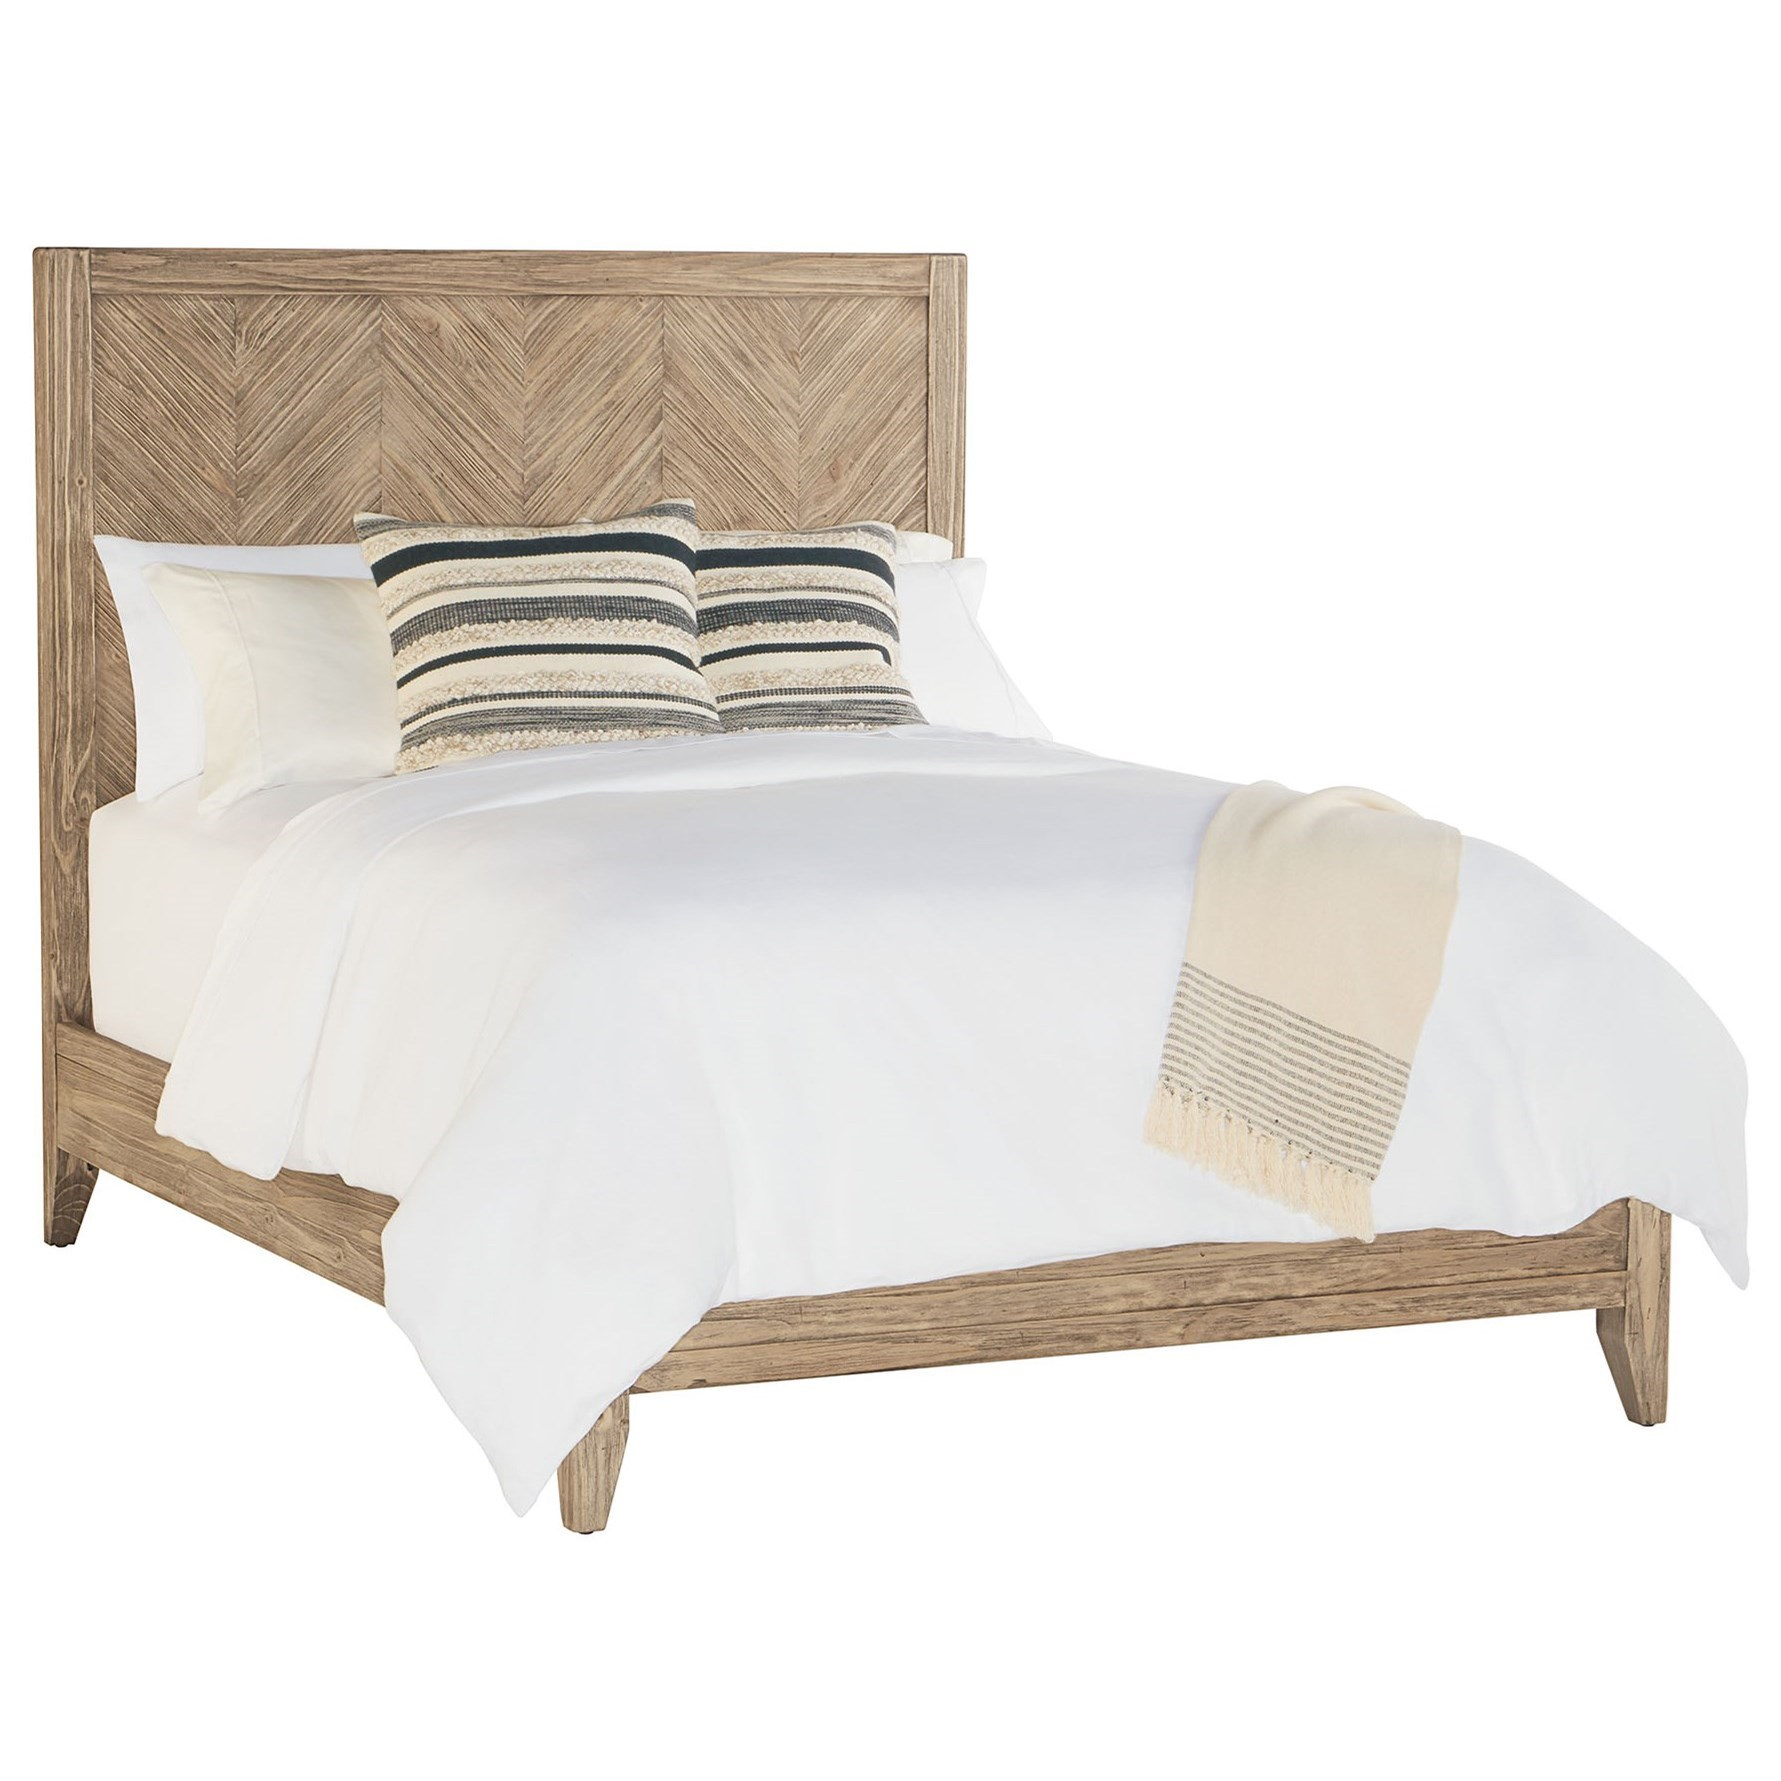 Magnolia home by joanna gaines industrial herringbone - Joanna gaines bedding collection ...